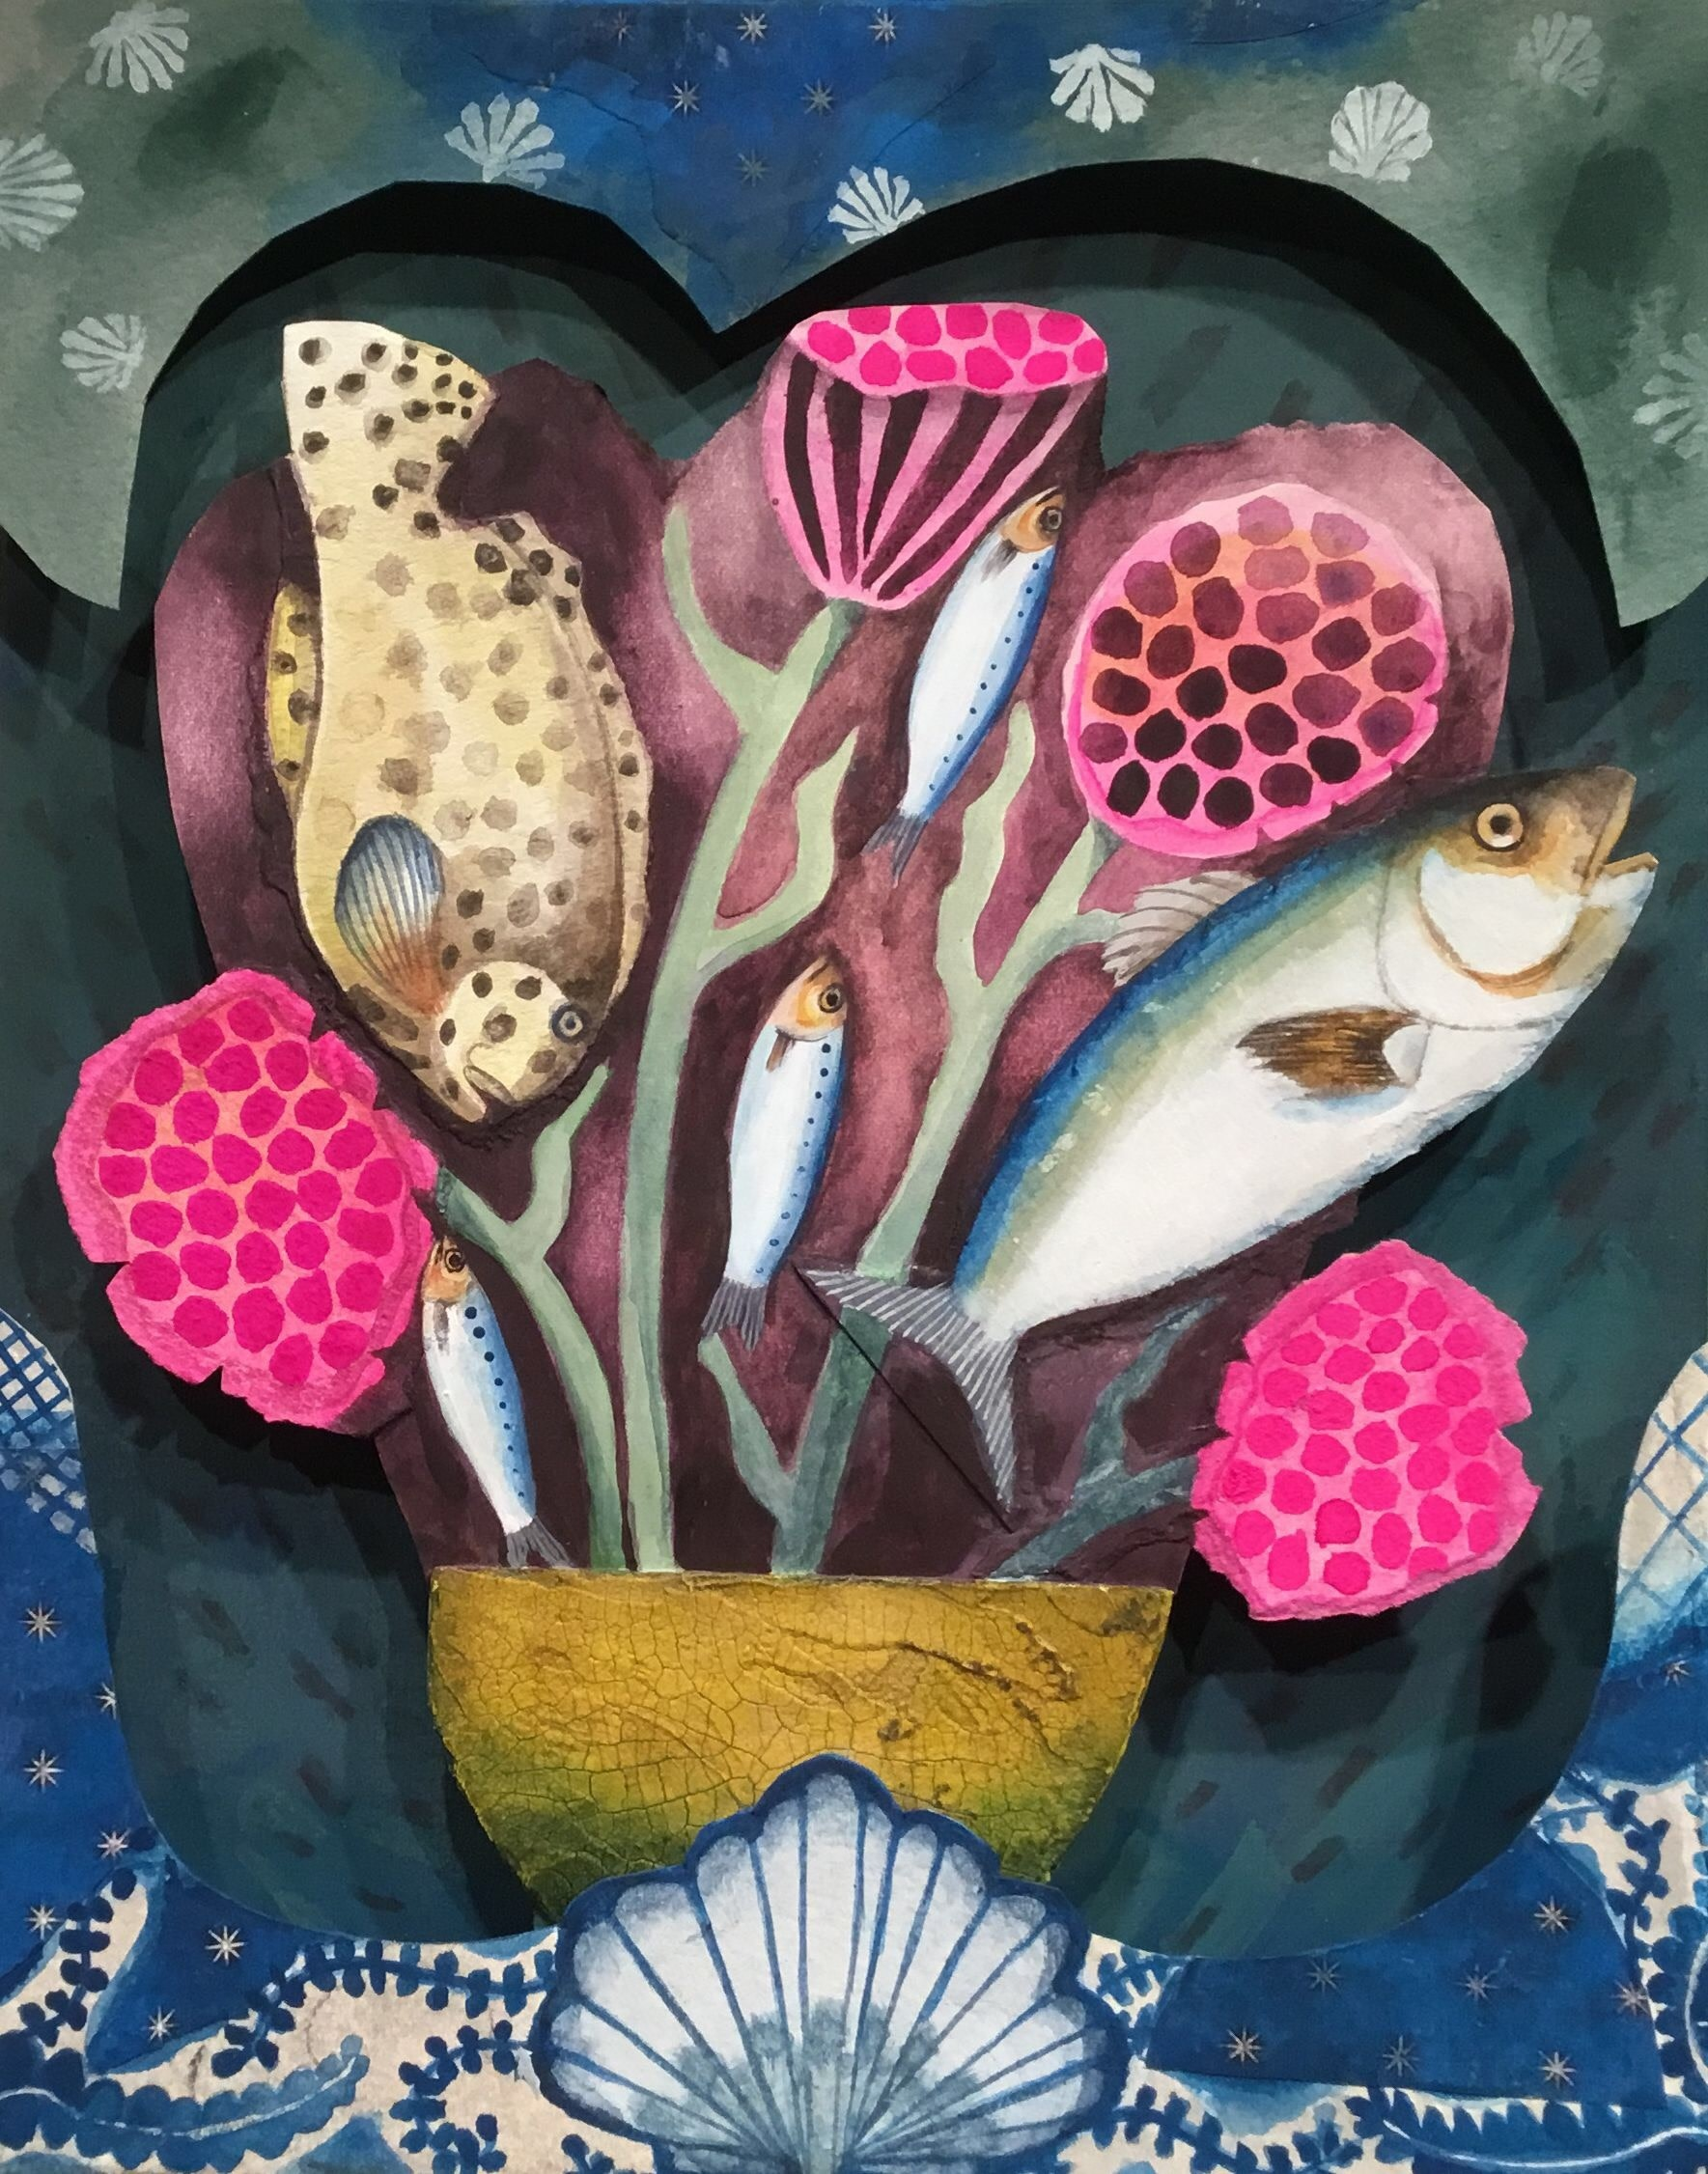 """<span class=""""link fancybox-details-link""""><a href=""""/artists/146-gertie-young/works/10980-gertie-young-bouquet-of-fish/"""">View Detail Page</a></span><div class=""""artist""""><span class=""""artist""""><strong>Gertie Young</strong></span></div><div class=""""title""""><em>Bouquet of Fish</em></div><div class=""""medium"""">watercolour and gouache collage</div><div class=""""dimensions"""">32x26x6cm</div><div class=""""price"""">£450.00</div>"""